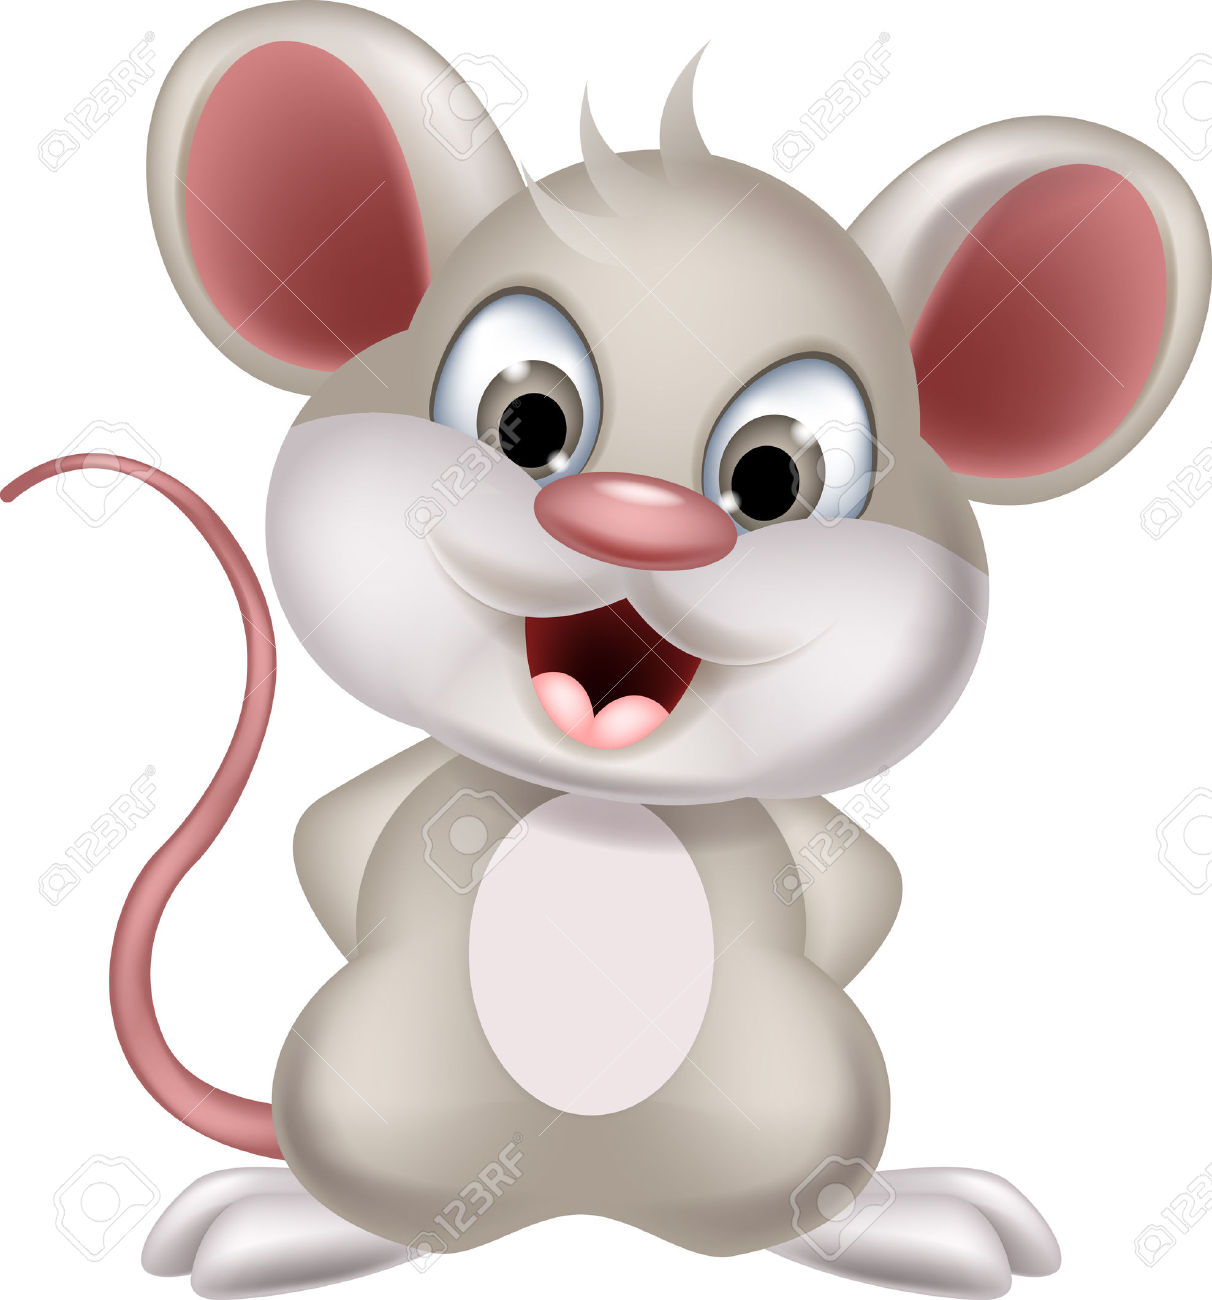 Rodent clipart baby mouse #7